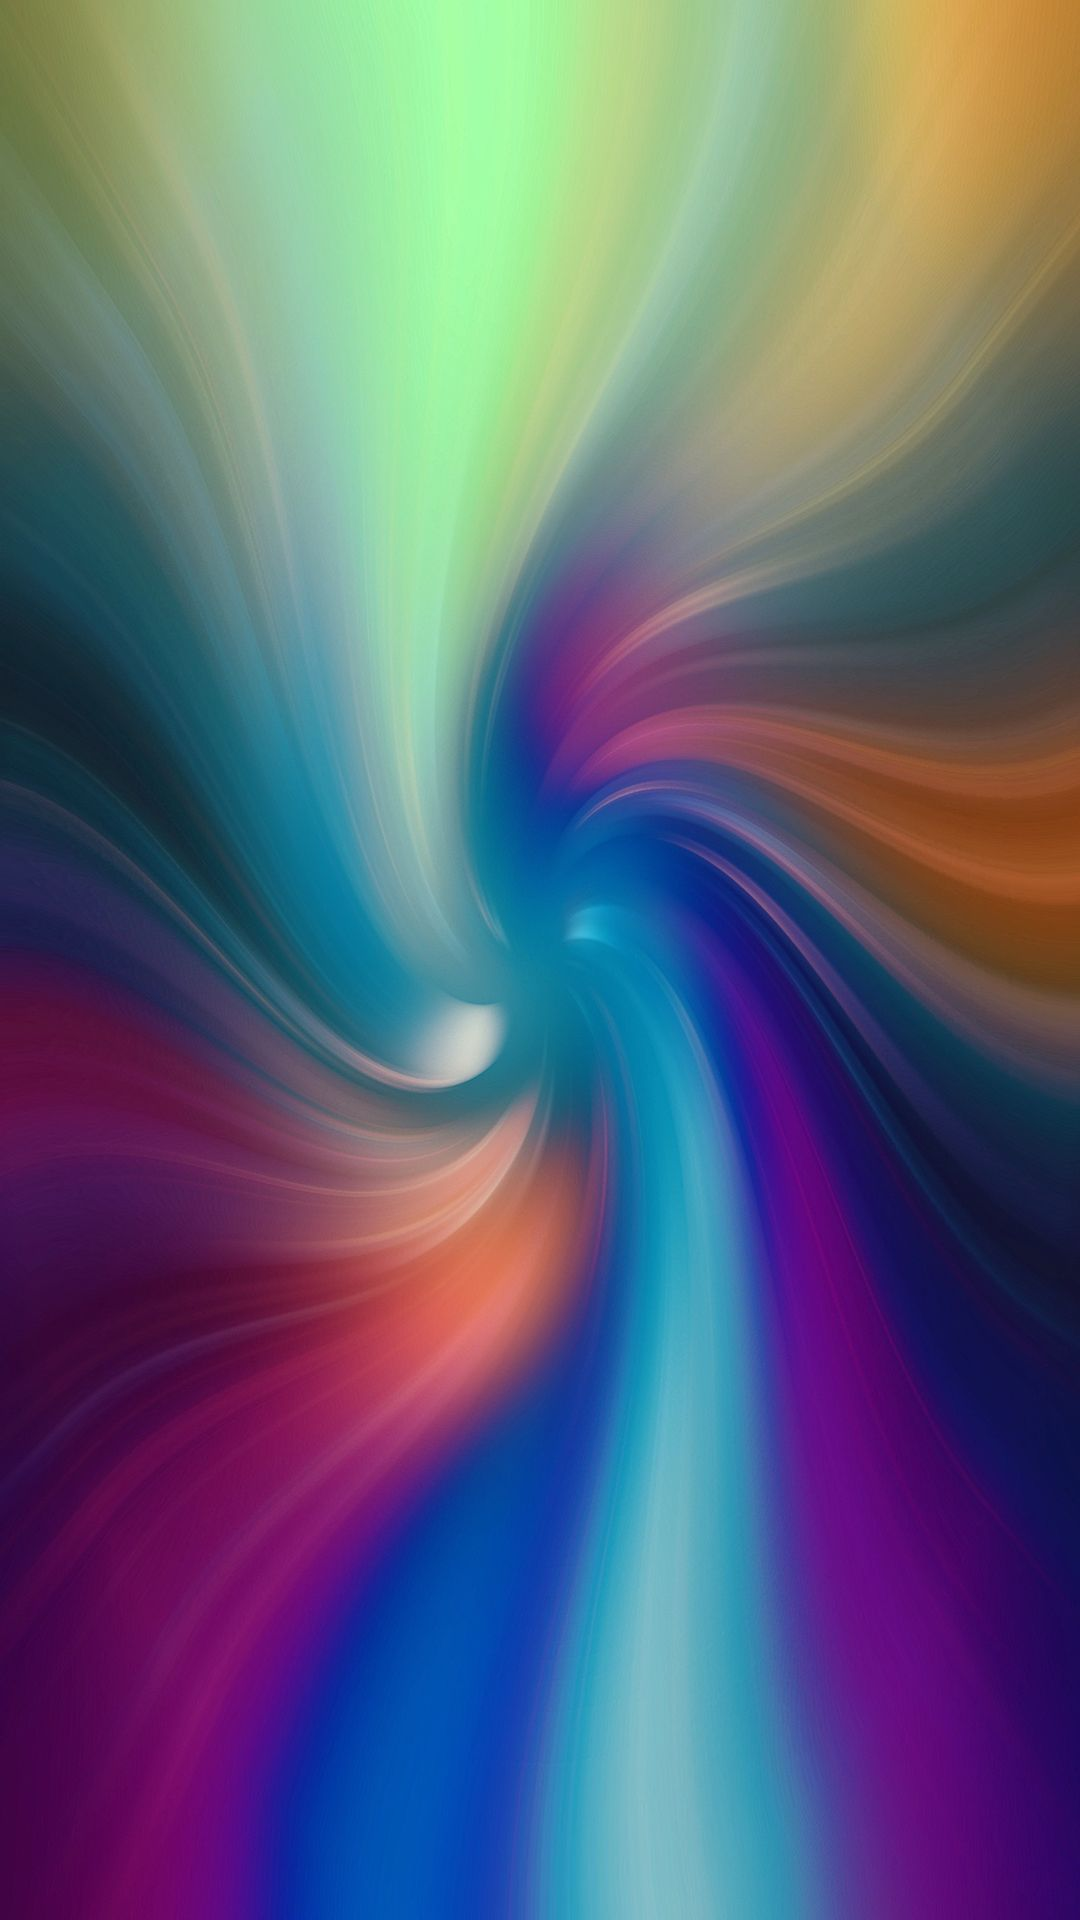 Iphone Xs Max Wallpaper Samsung Note 8 Wallpapers Wallpaper